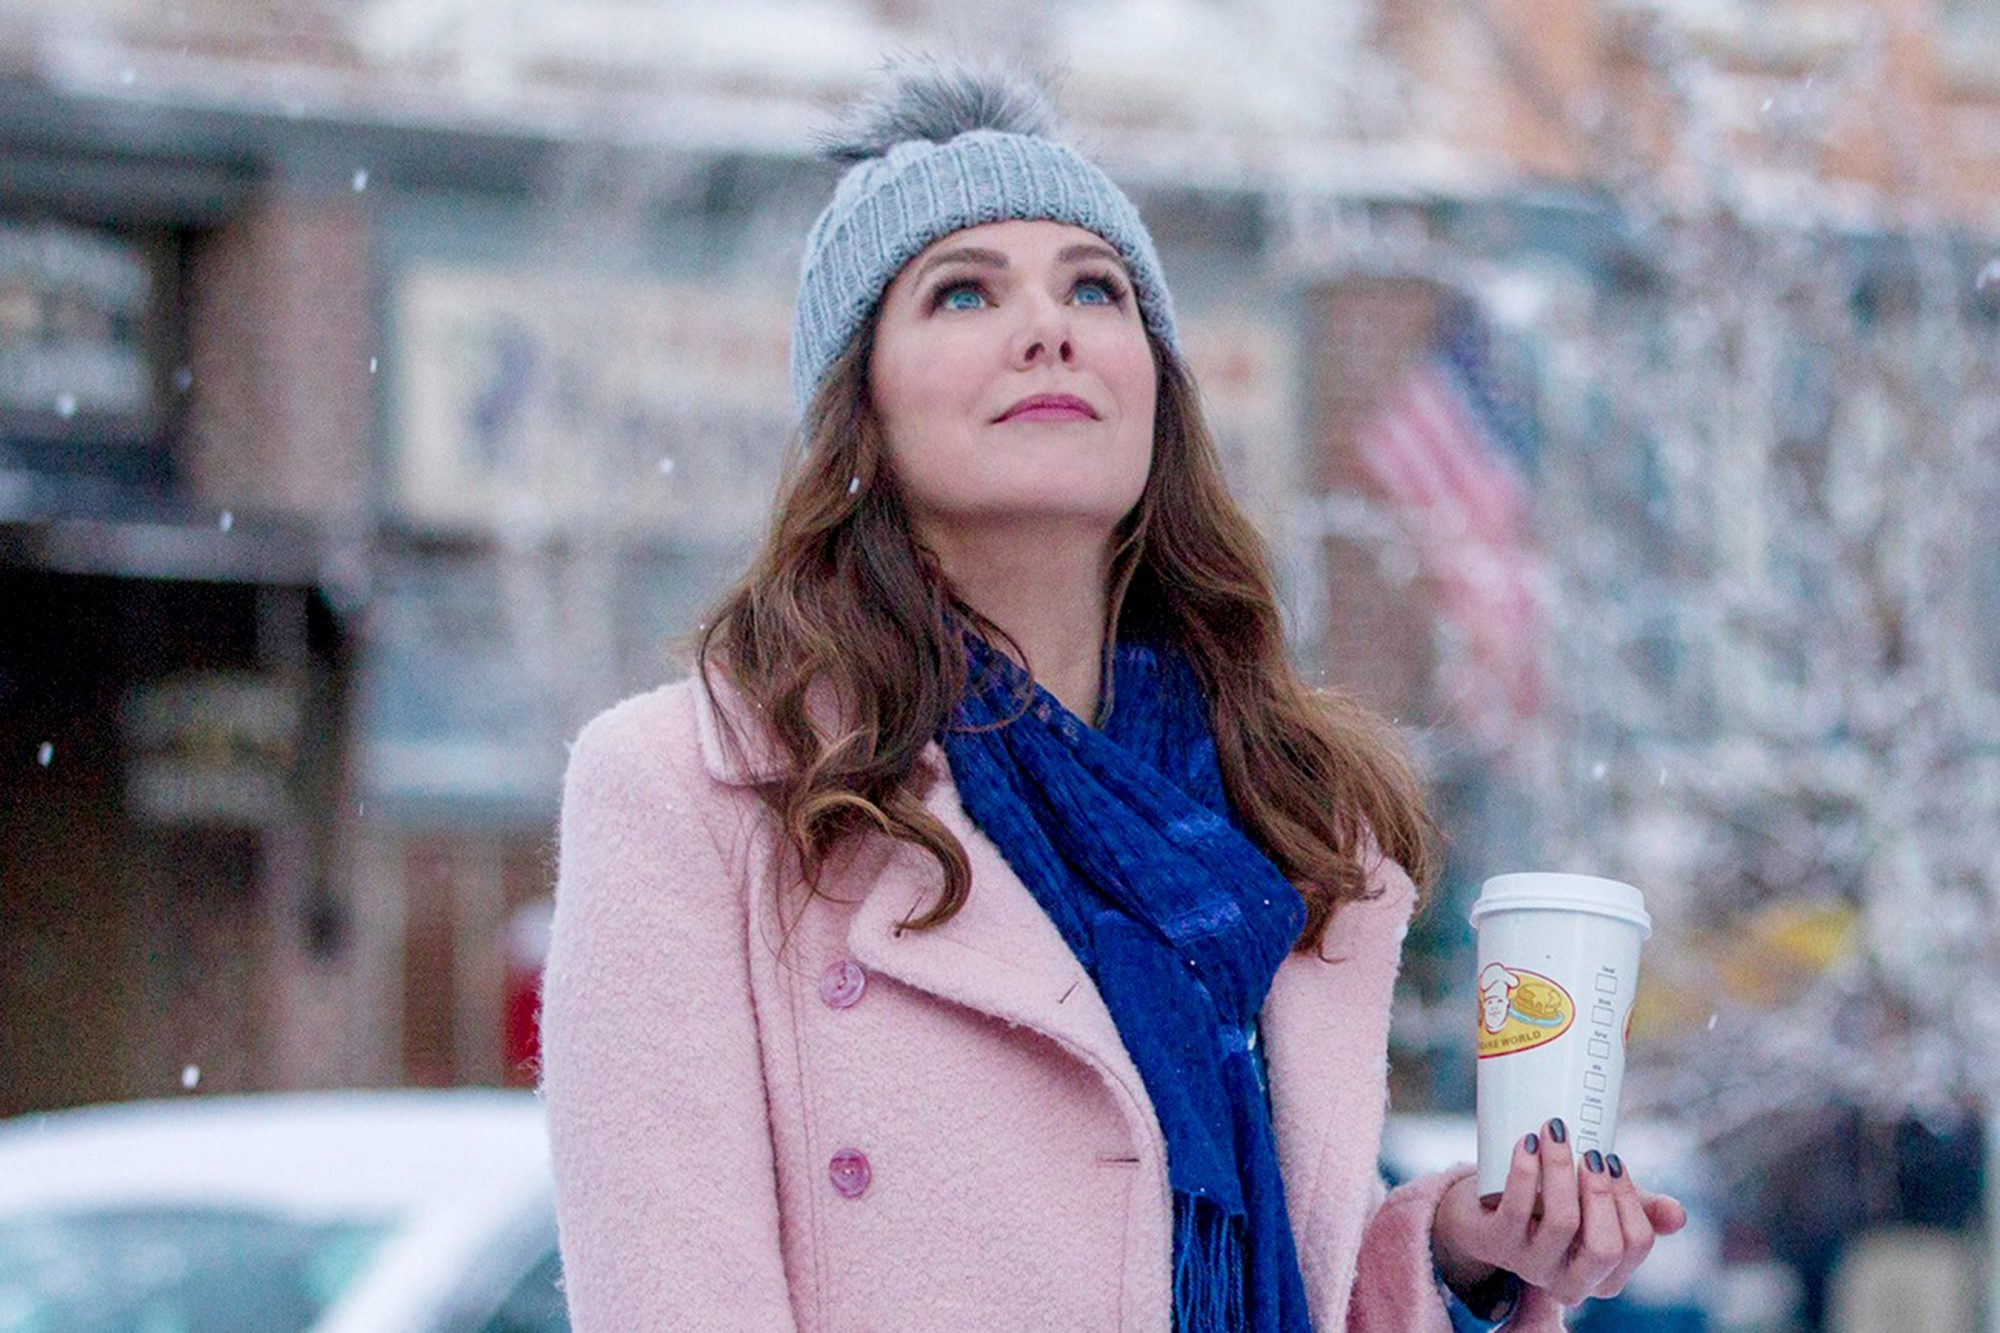 GILMORE GIRLS: A YEAR IN THE LIFE, Lauren Graham, Alexis Bledel in 'Winter', (Season 1, Episode